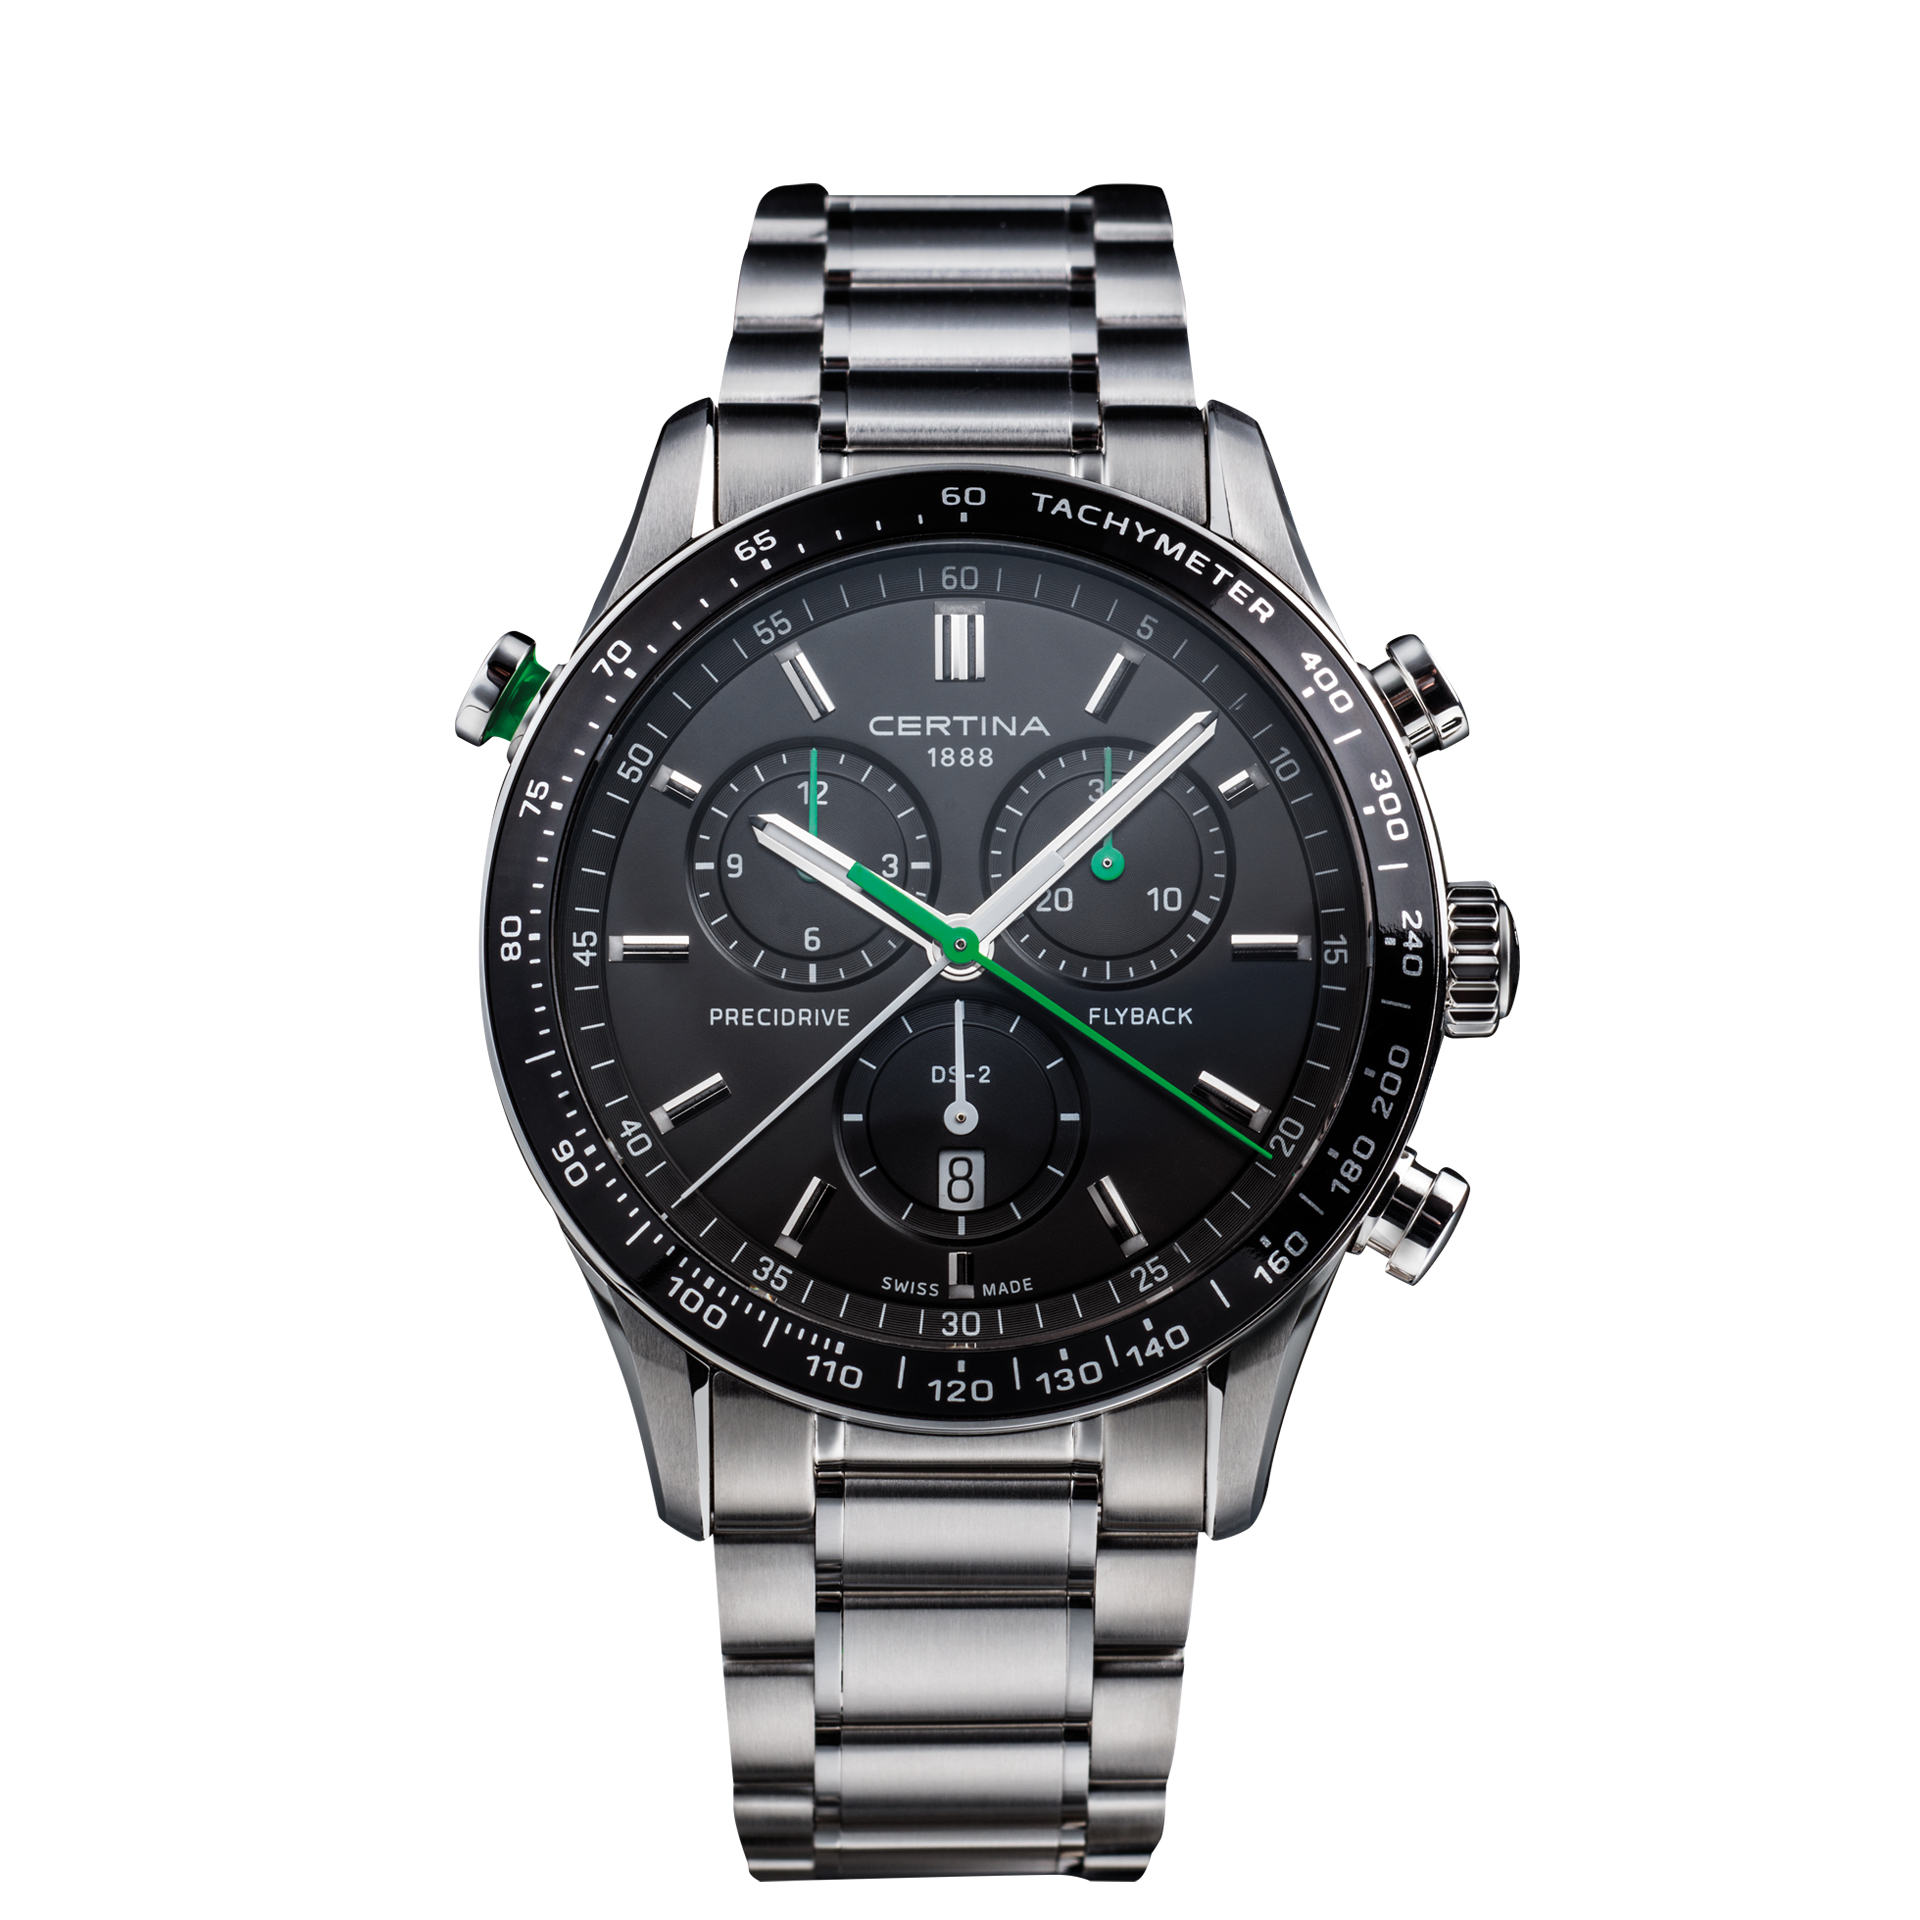 Certina Ds 2 Chronograph Flyback Your Watch Hub